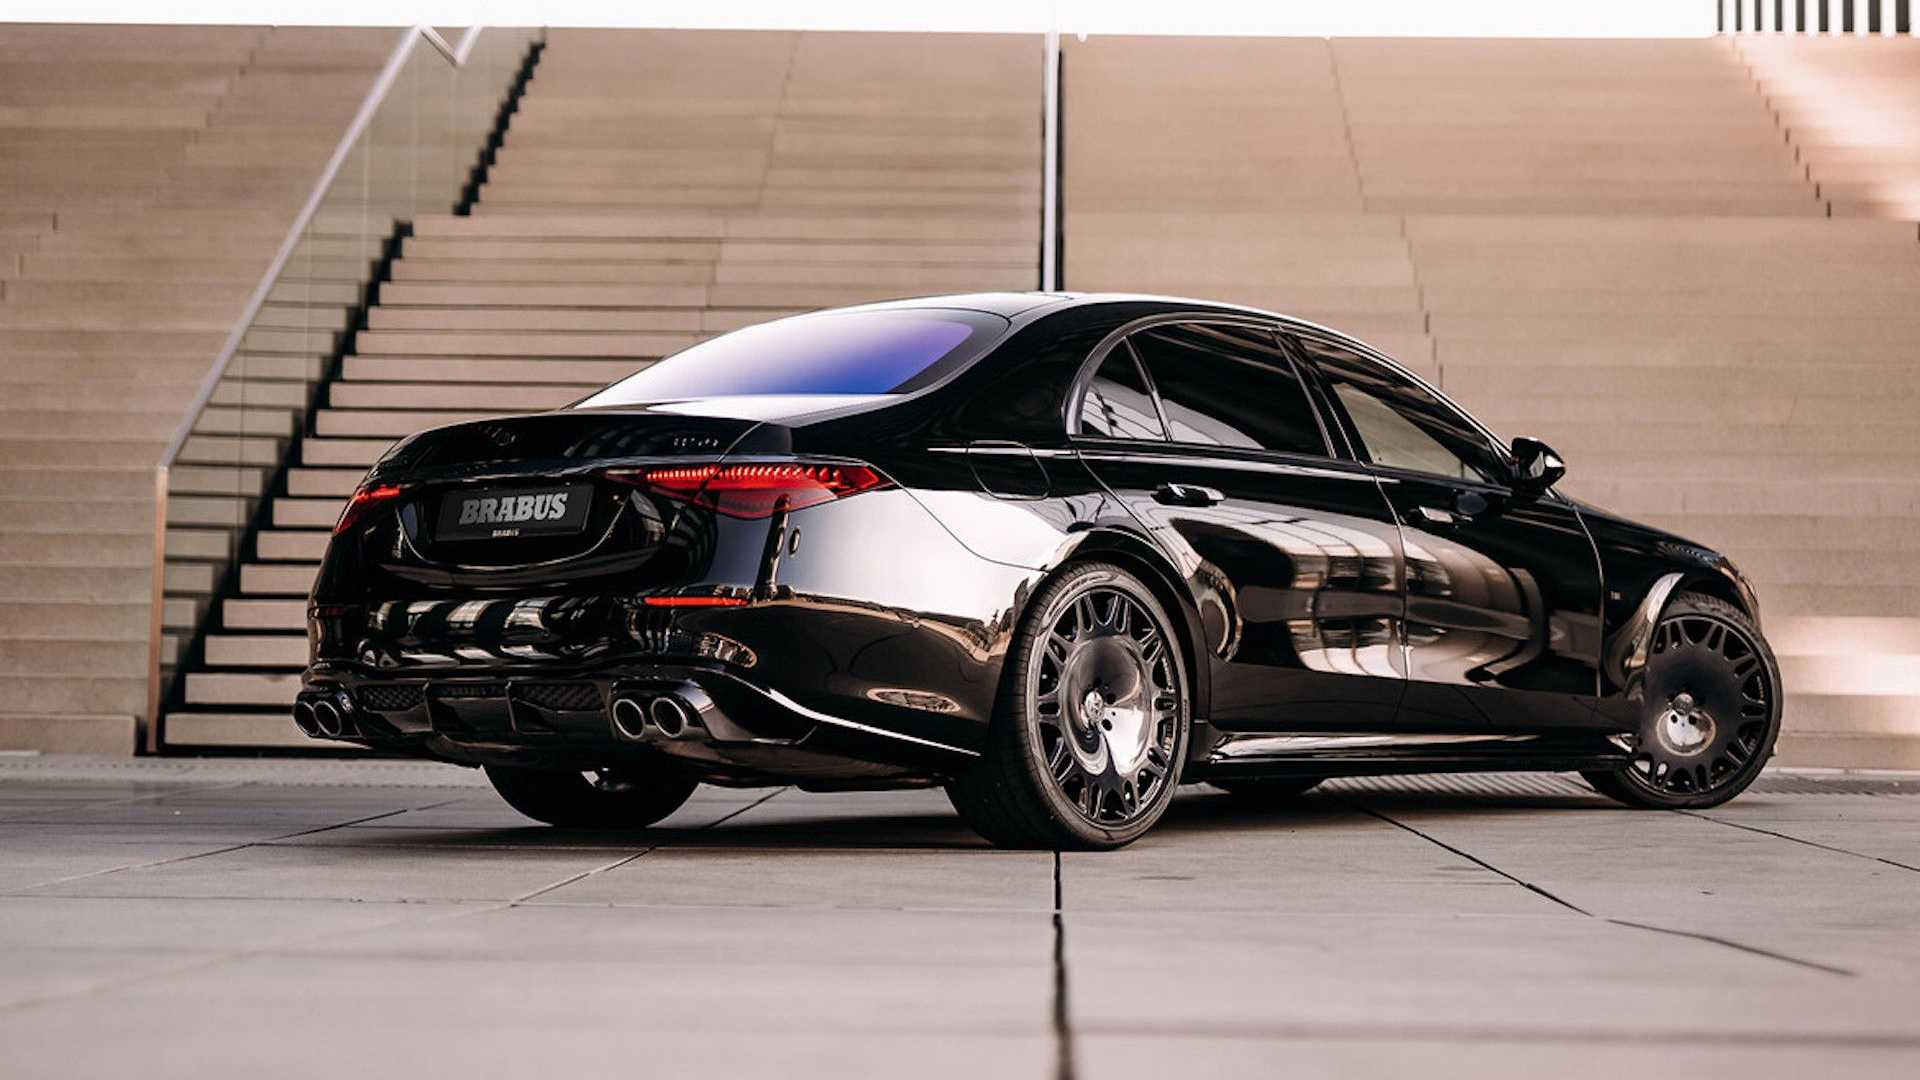 1618982405 863 Brabus 500 entered the market Concentrated makeup of the new Brabus 500 entered the market; Concentrated makeup of the new generation Mercedes-Benz S-Class 2